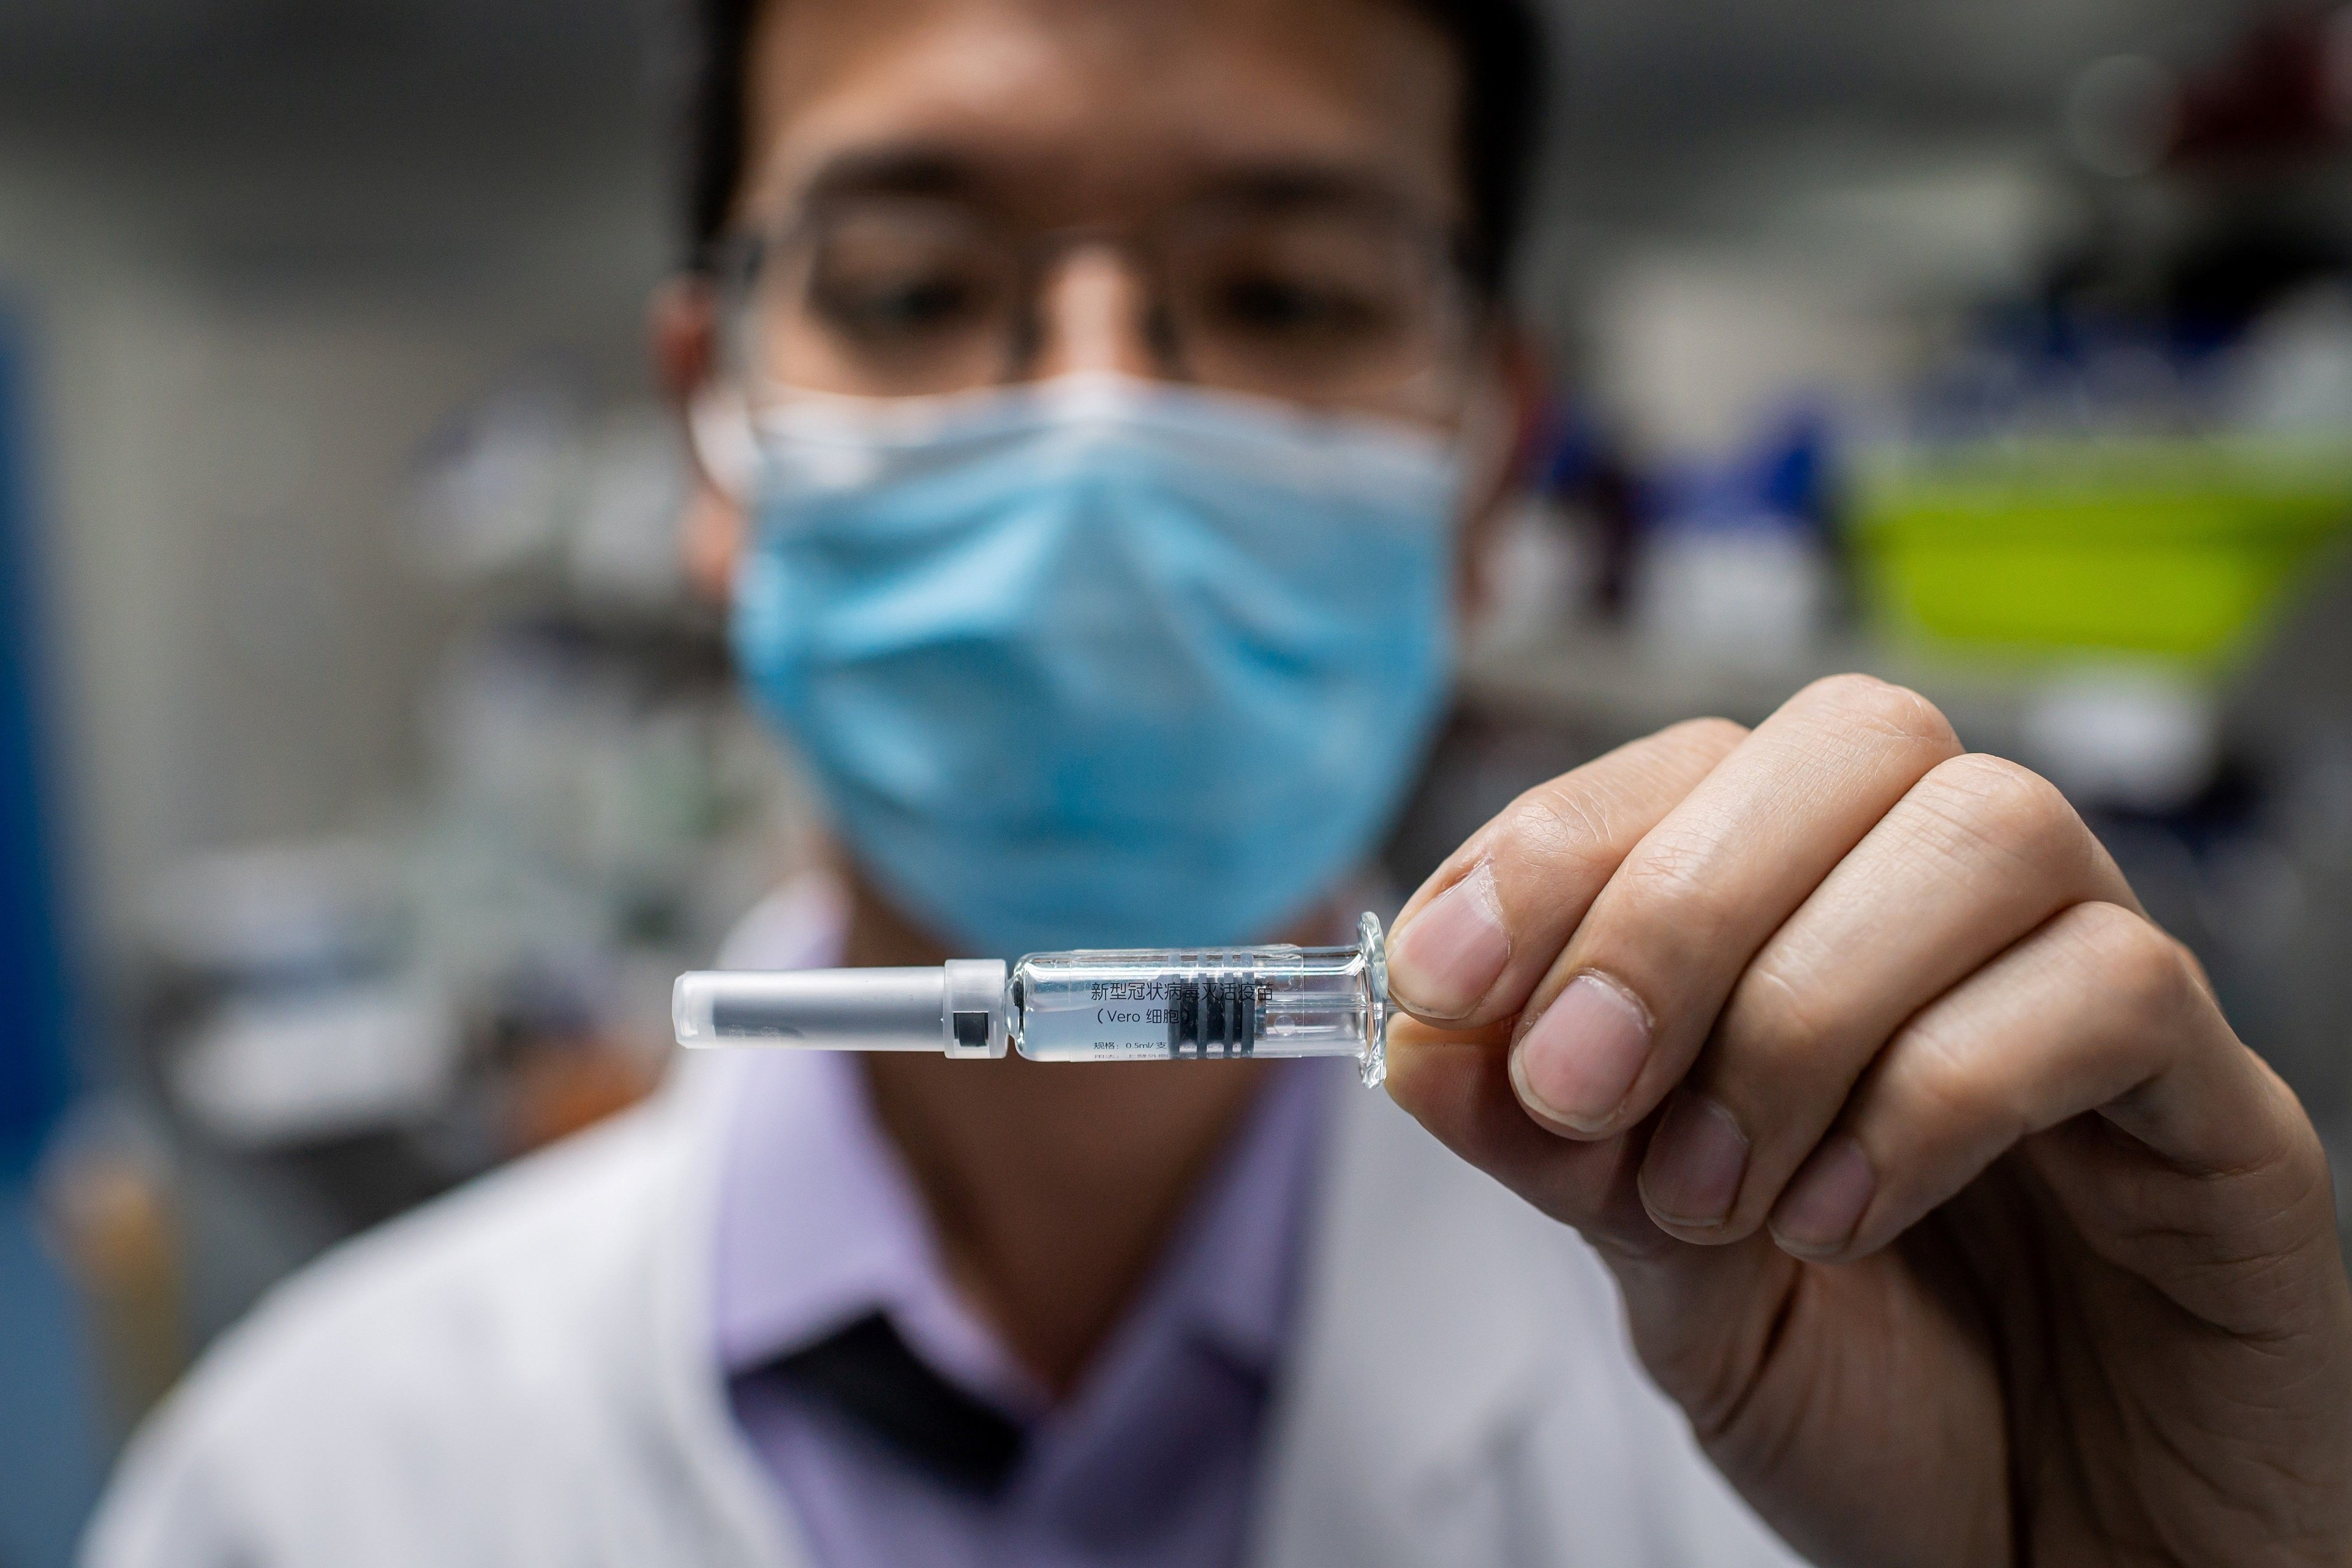 An engineer shows a COVID-19 vaccine candidate in Beijing.